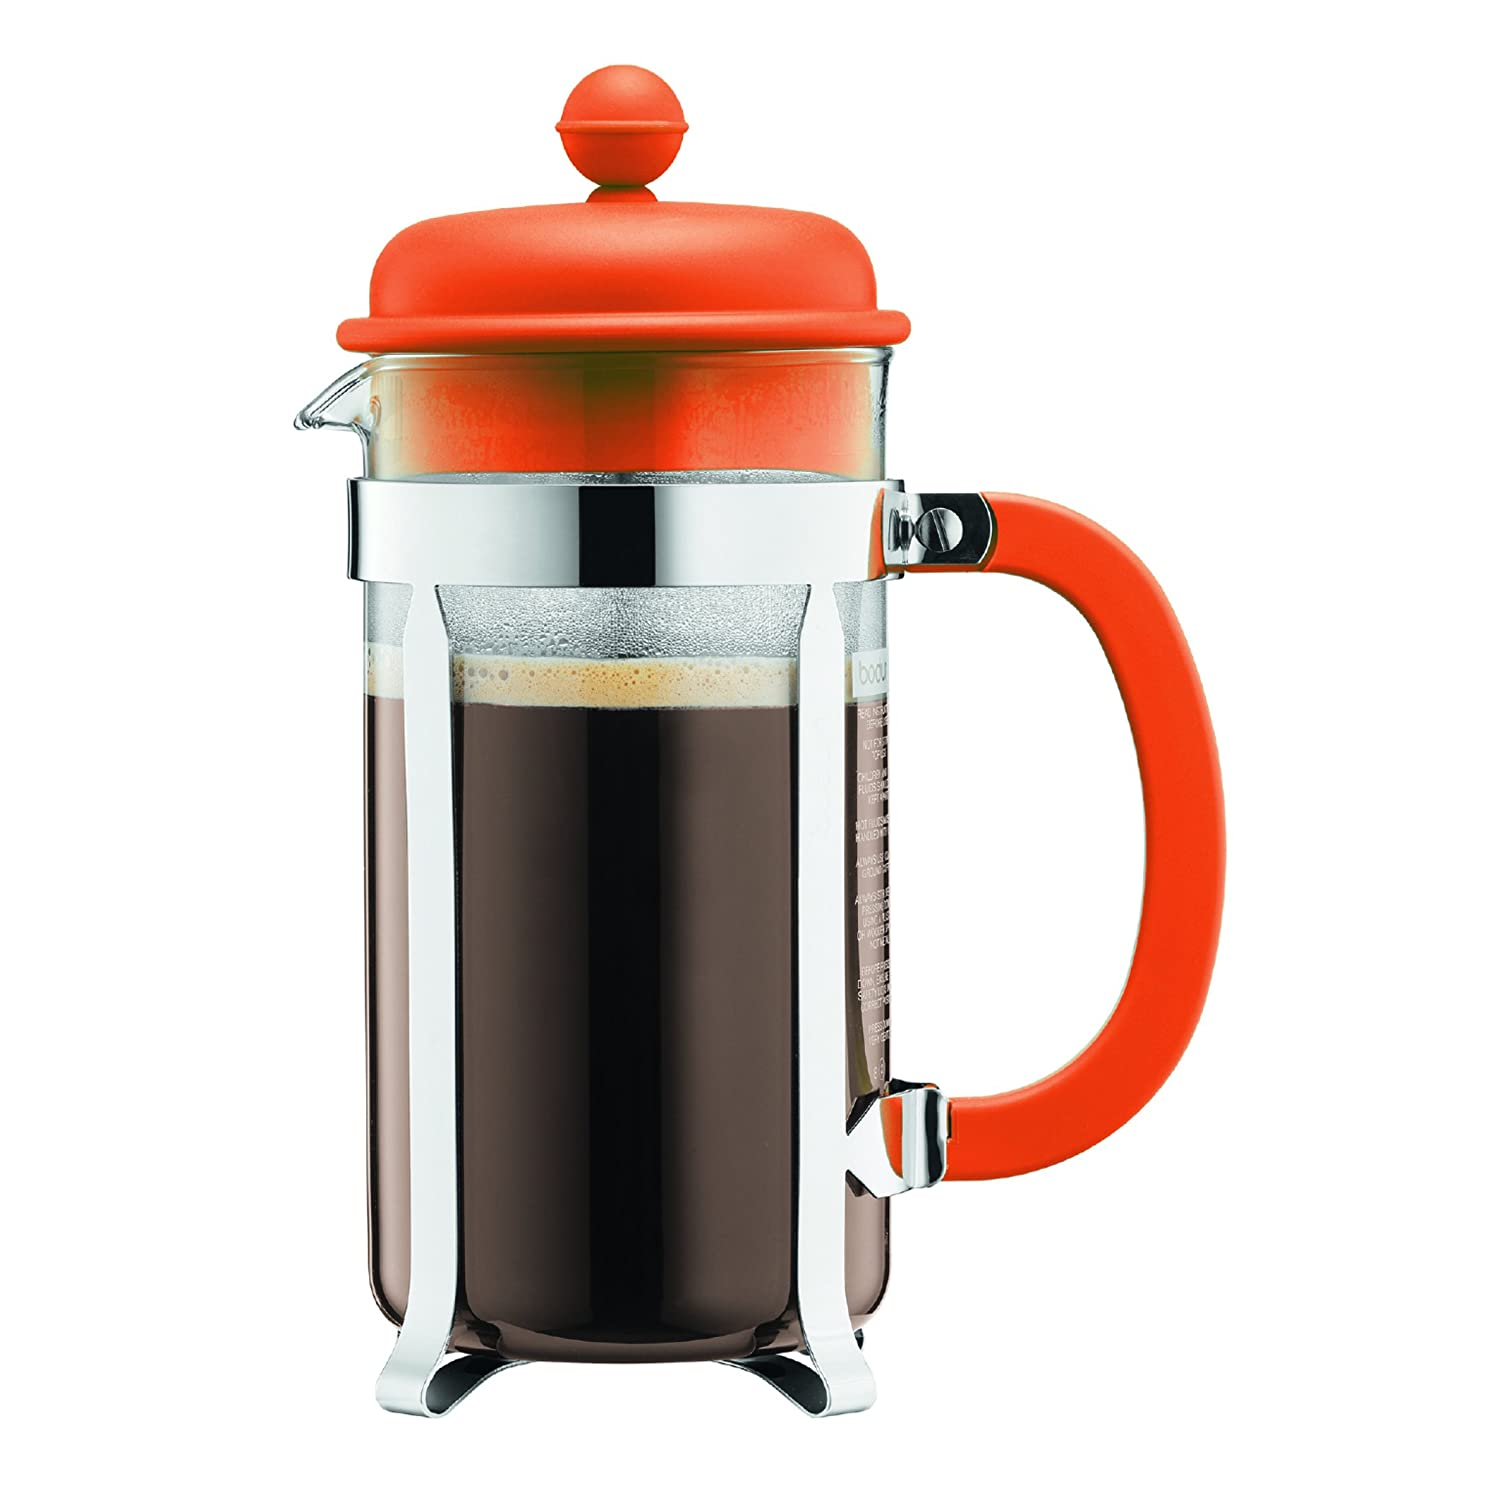 BODUM Caffettiera 3 Cup French Press Coffee Maker, Orange, 0.35 l, 12 oz 1913-948B-Y17